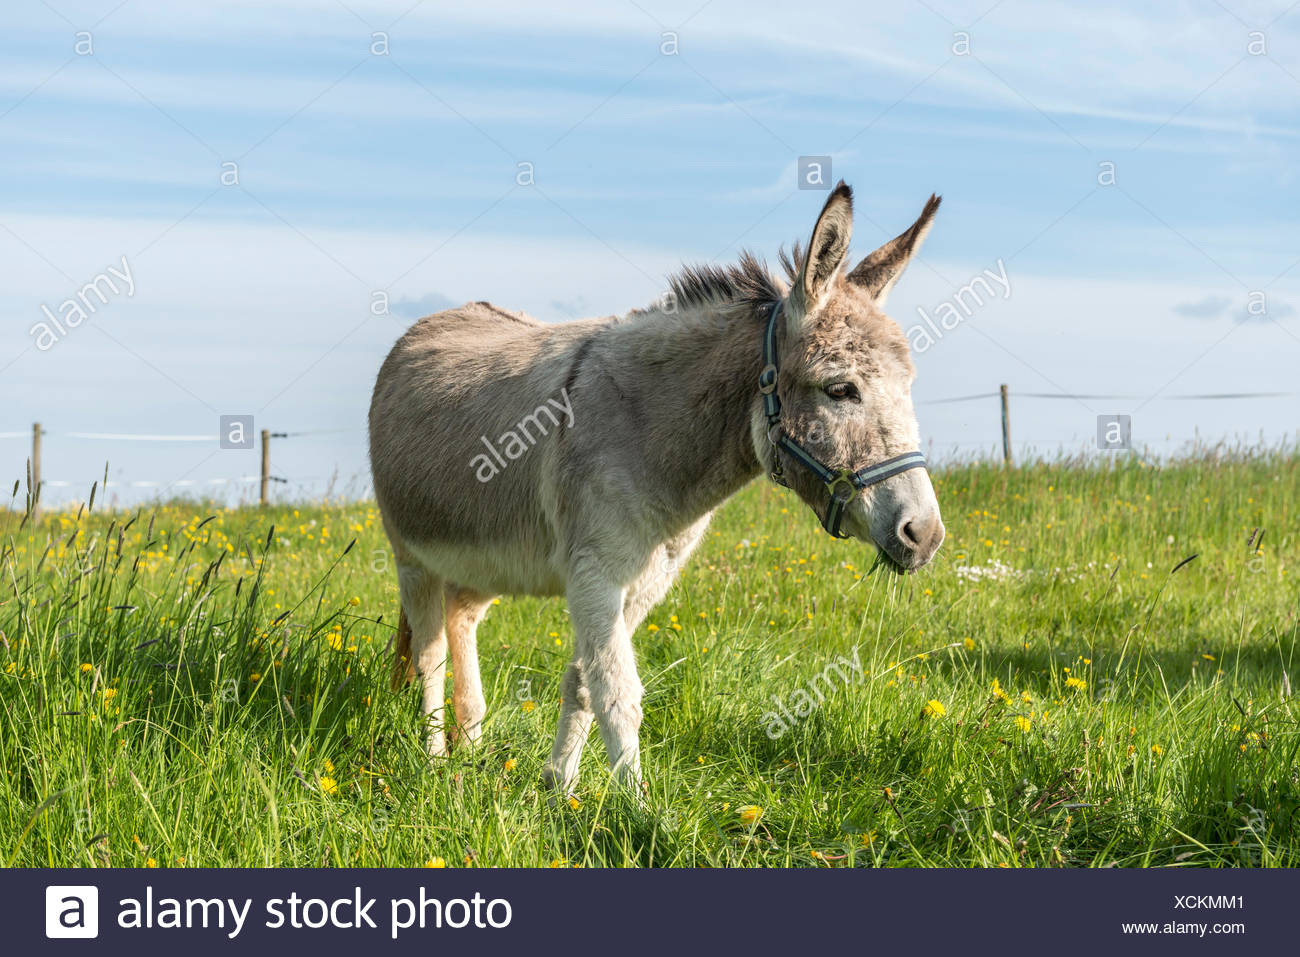 Weiten-Gesäß. Hessen, Germany, domestic donkey on pasture Stock Photo